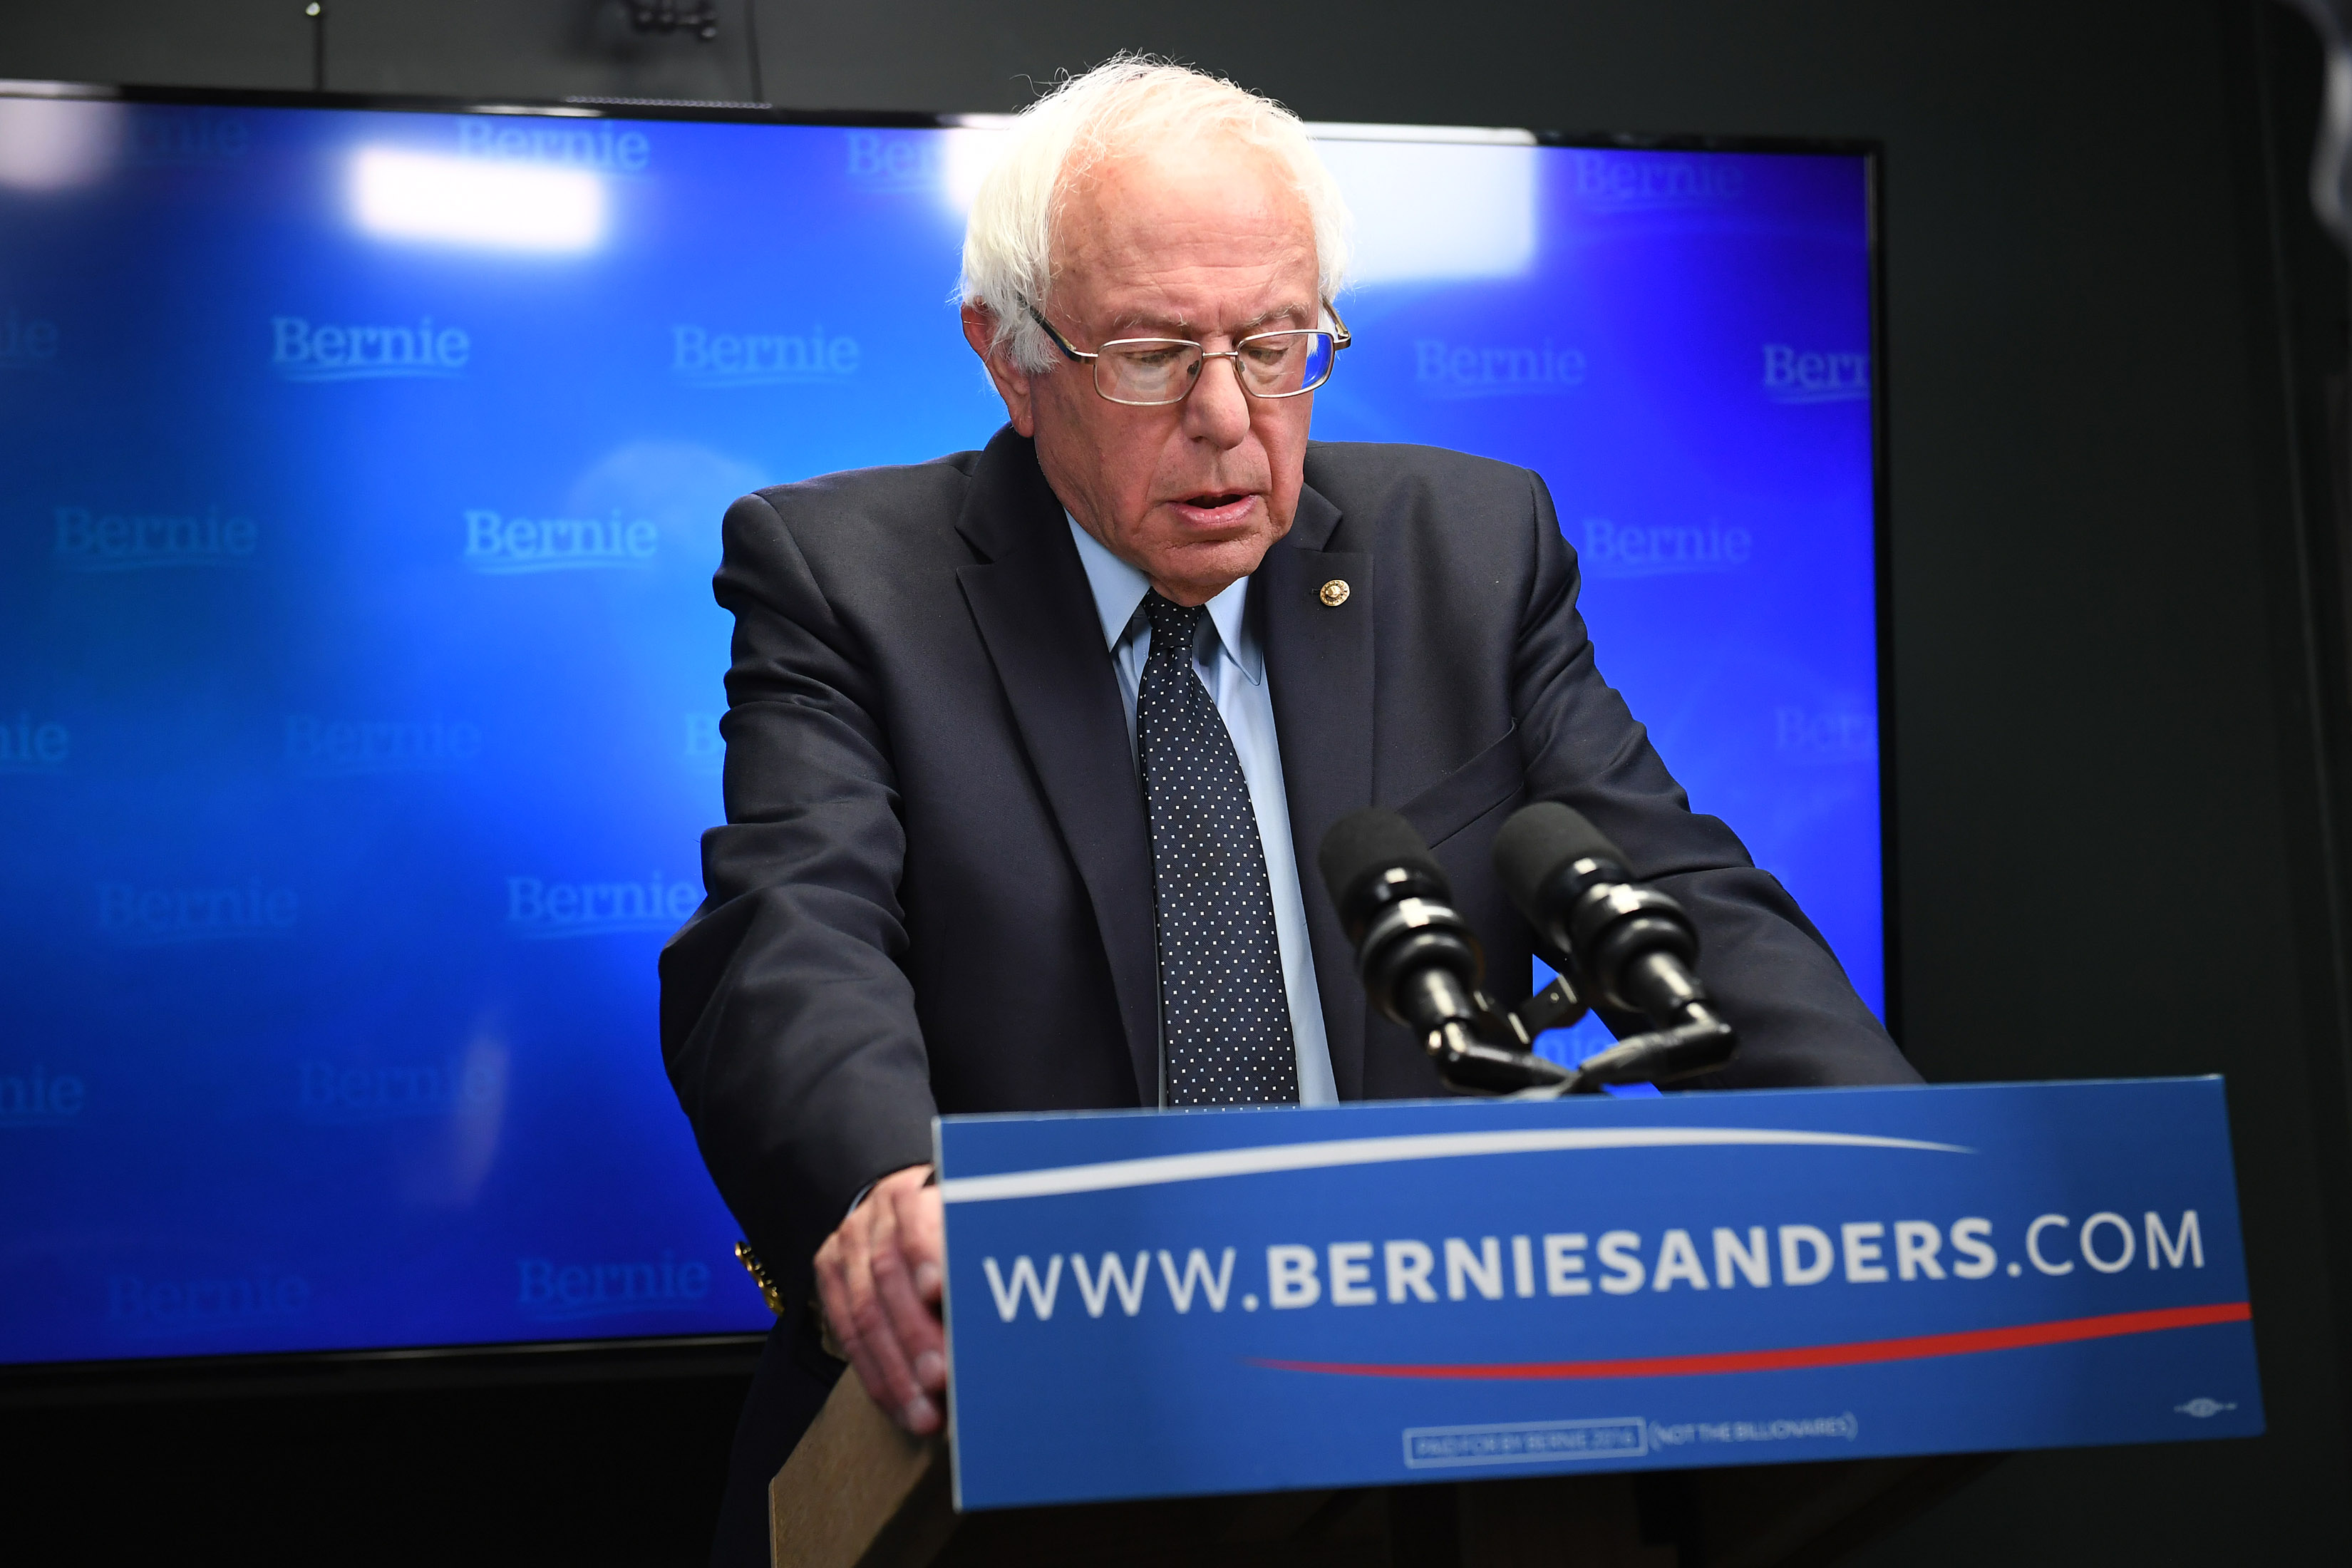 Presidential candidate Bernie Sanders prepares to speak for a video to supporters at Polaris Mediaworks in Burlington, Vt.,  on June 16, 2016.